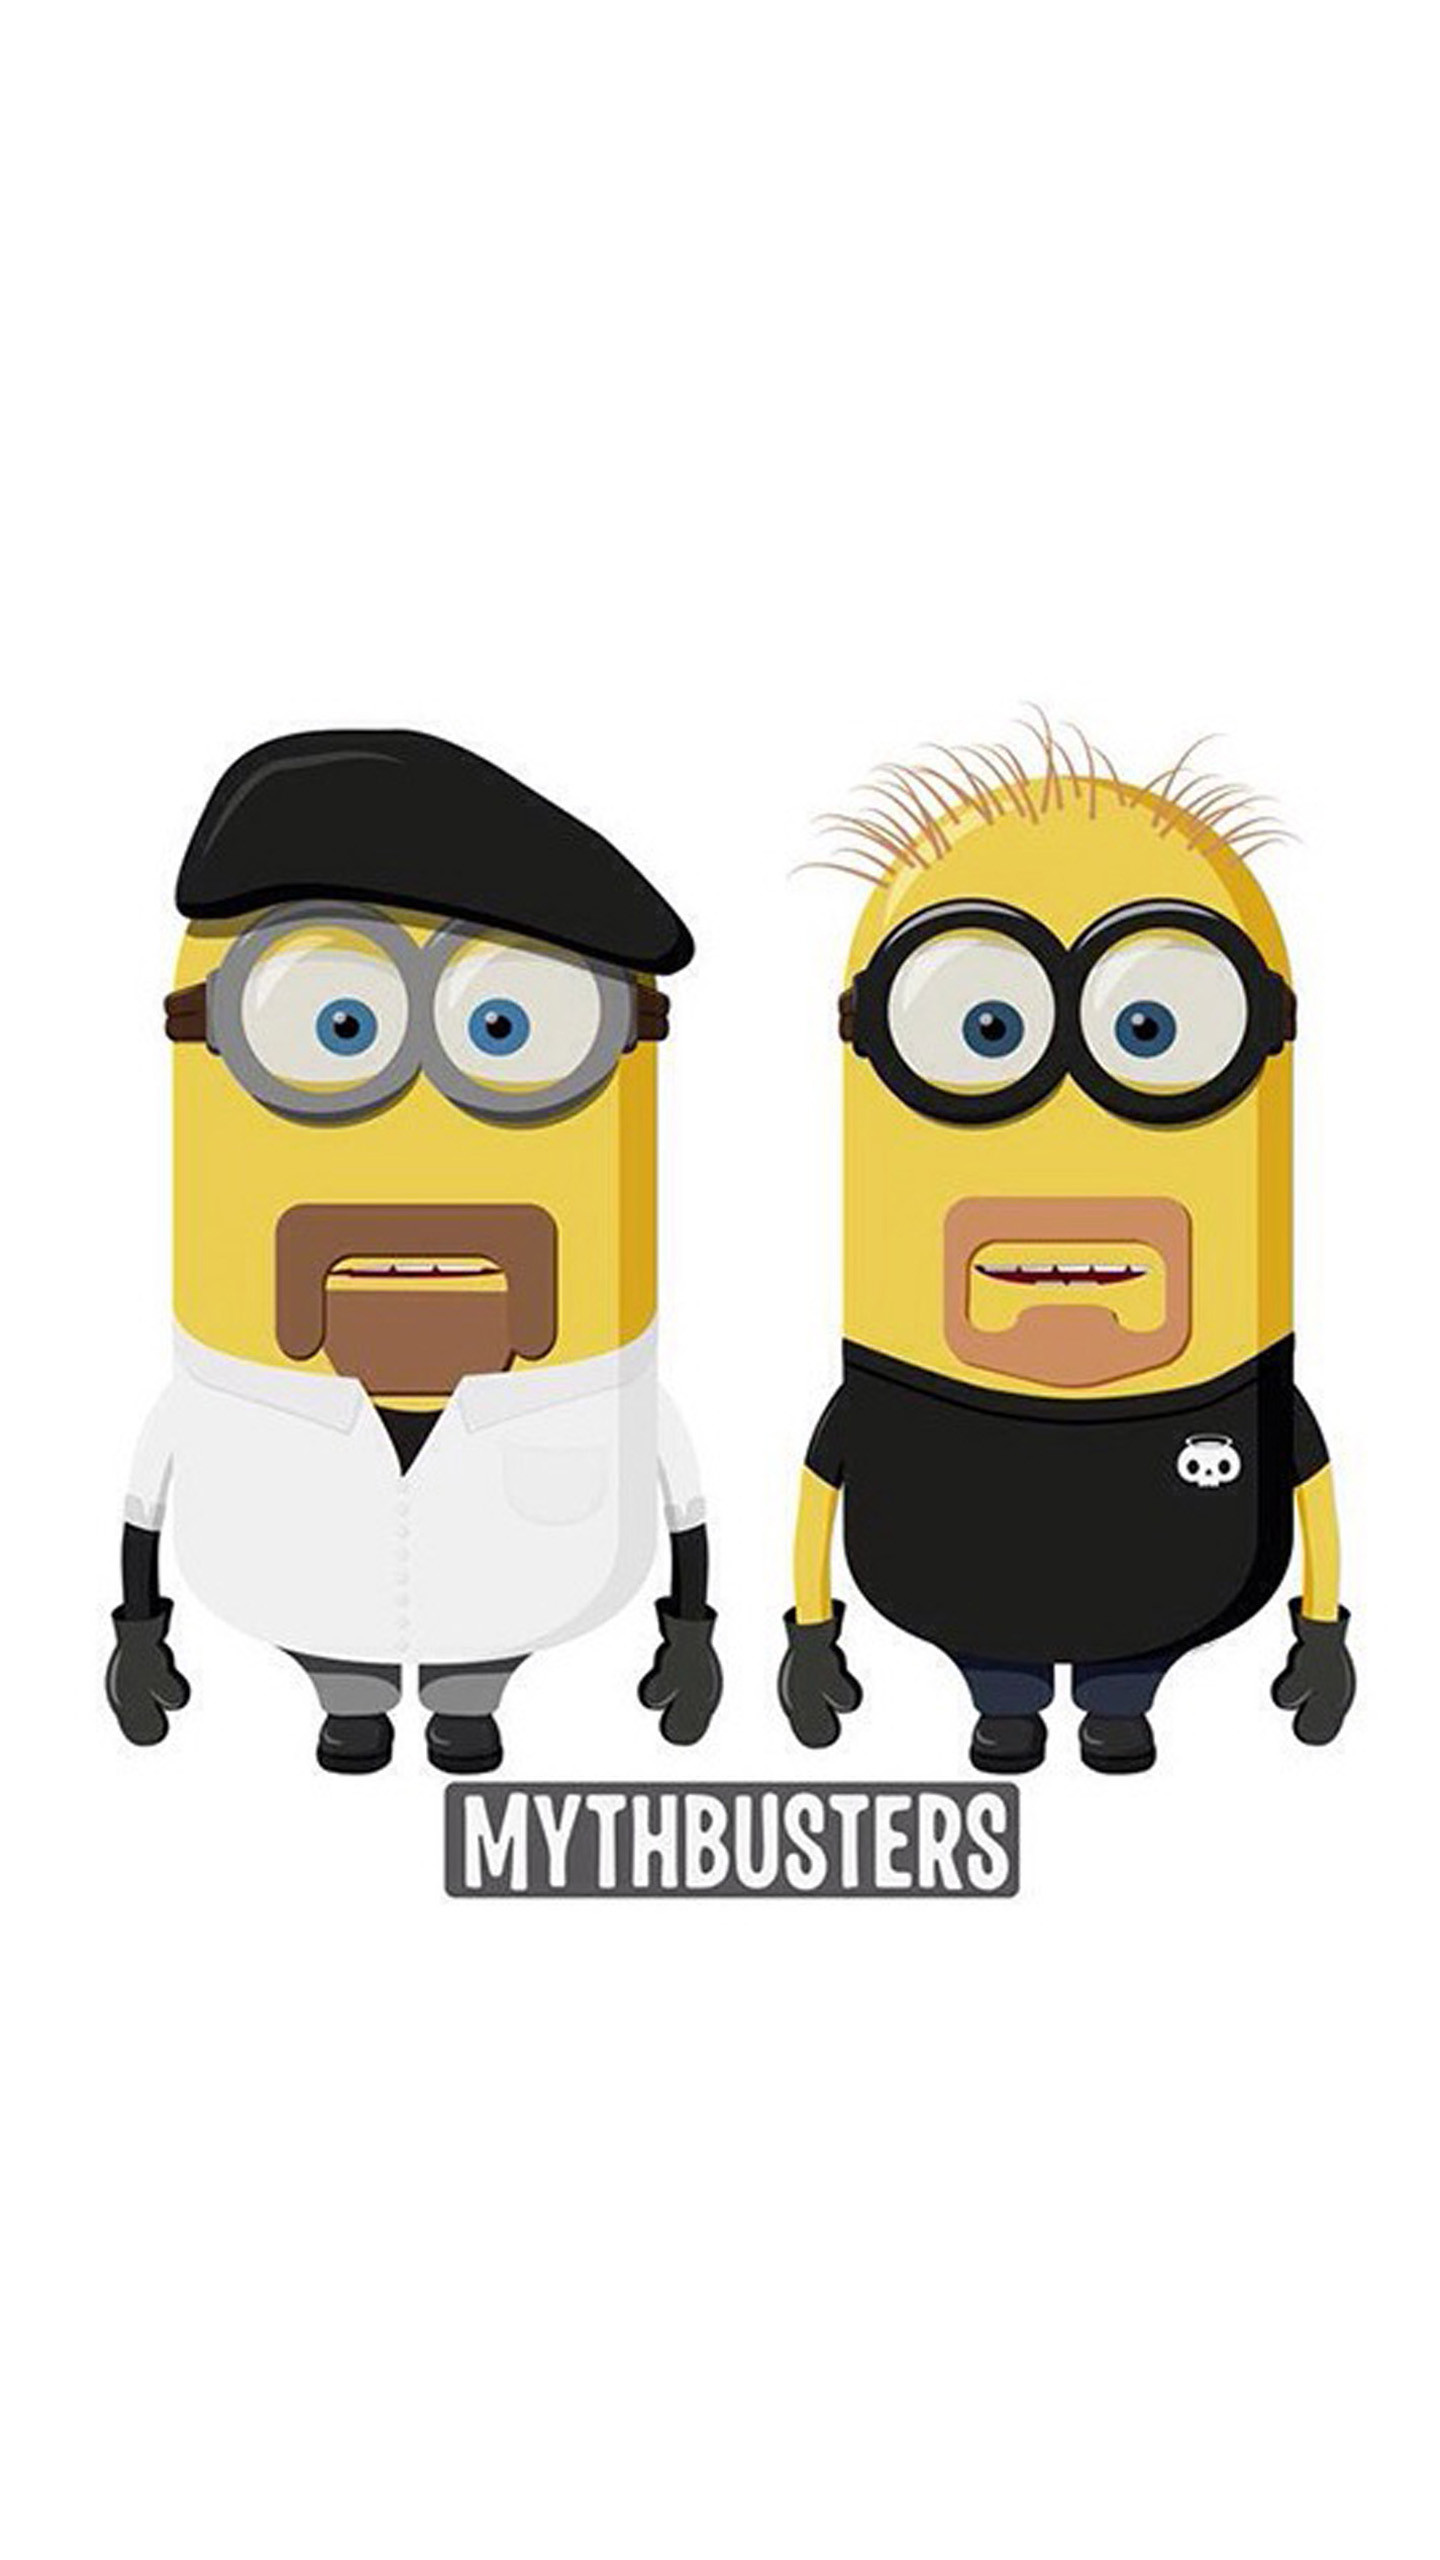 1440x2560 Mythbusters Minions Animation